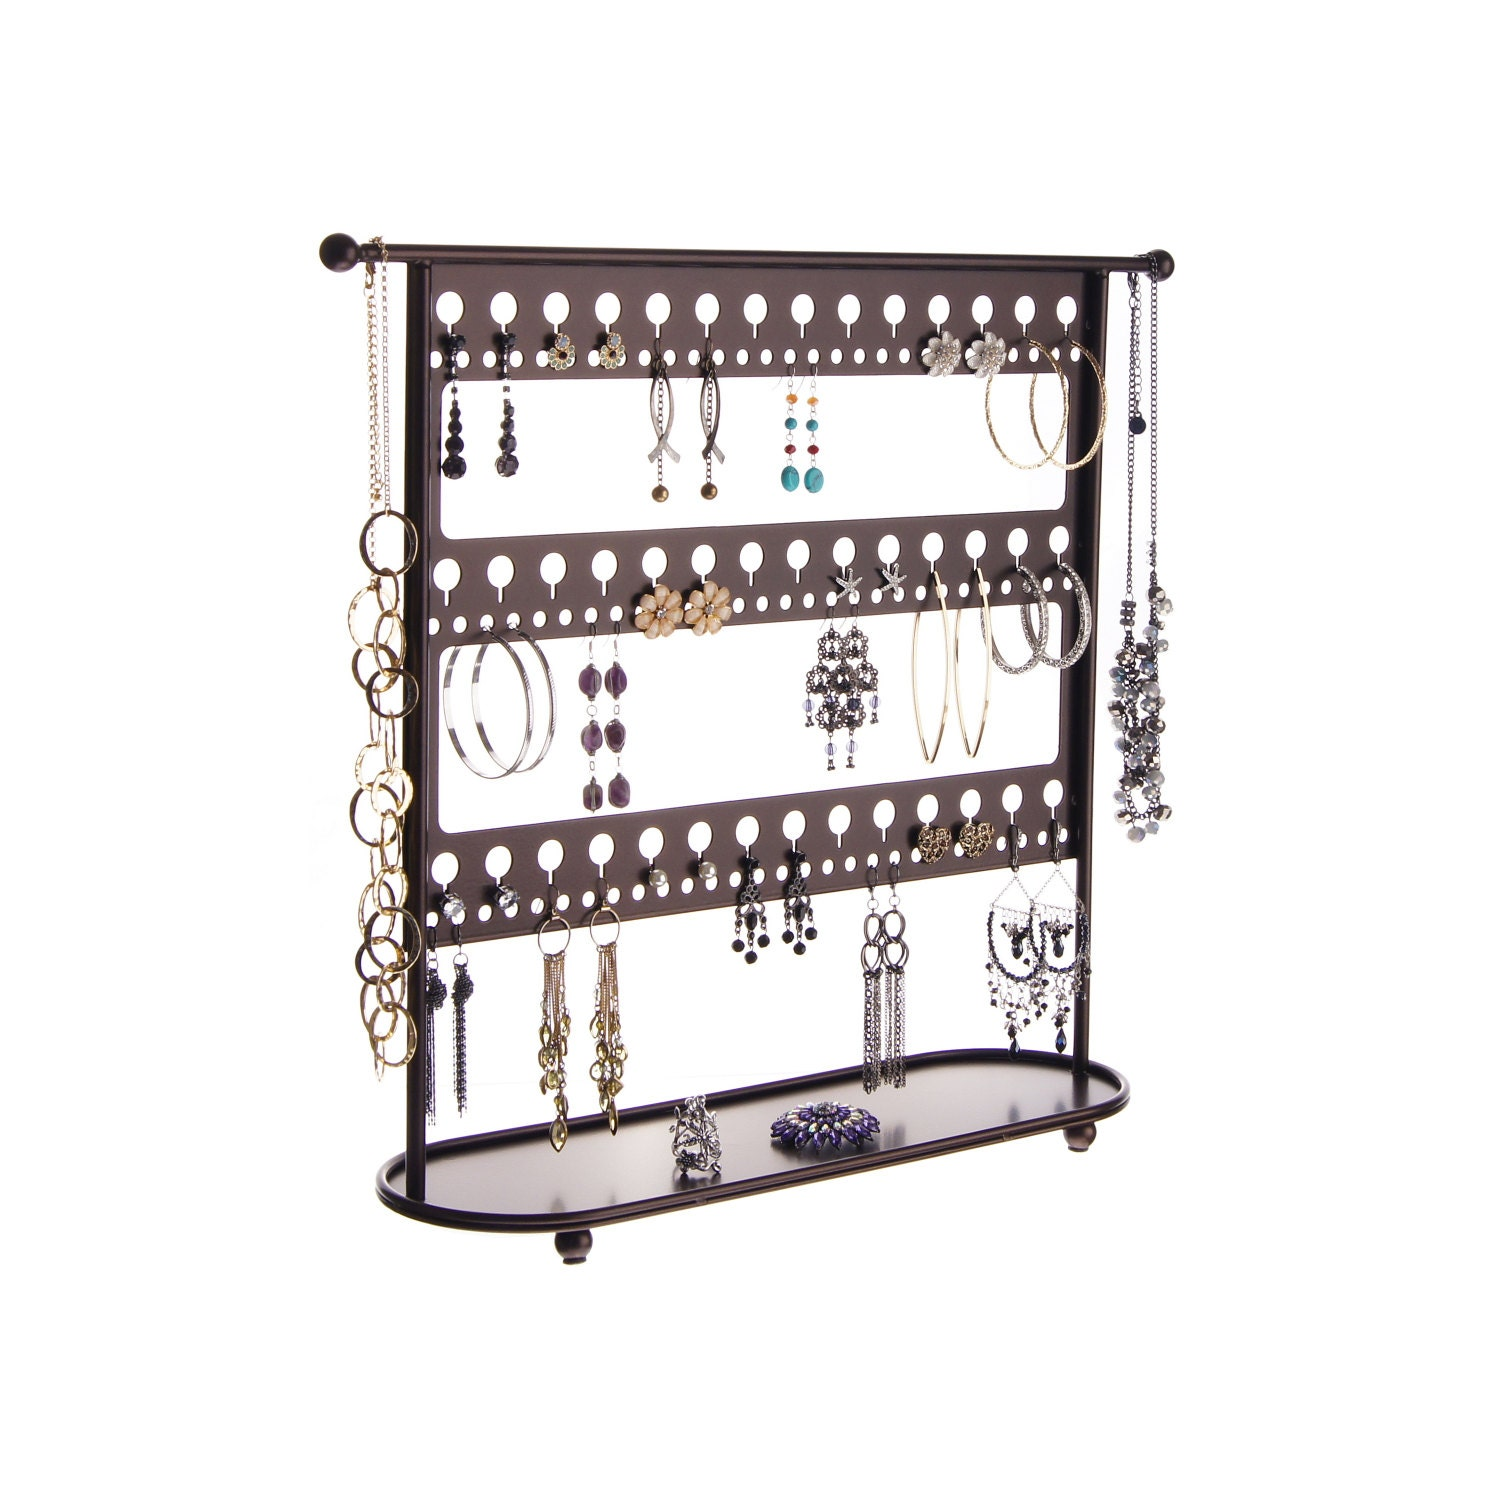 earring holder stand jewelry organizer hanging necklace tree. Black Bedroom Furniture Sets. Home Design Ideas